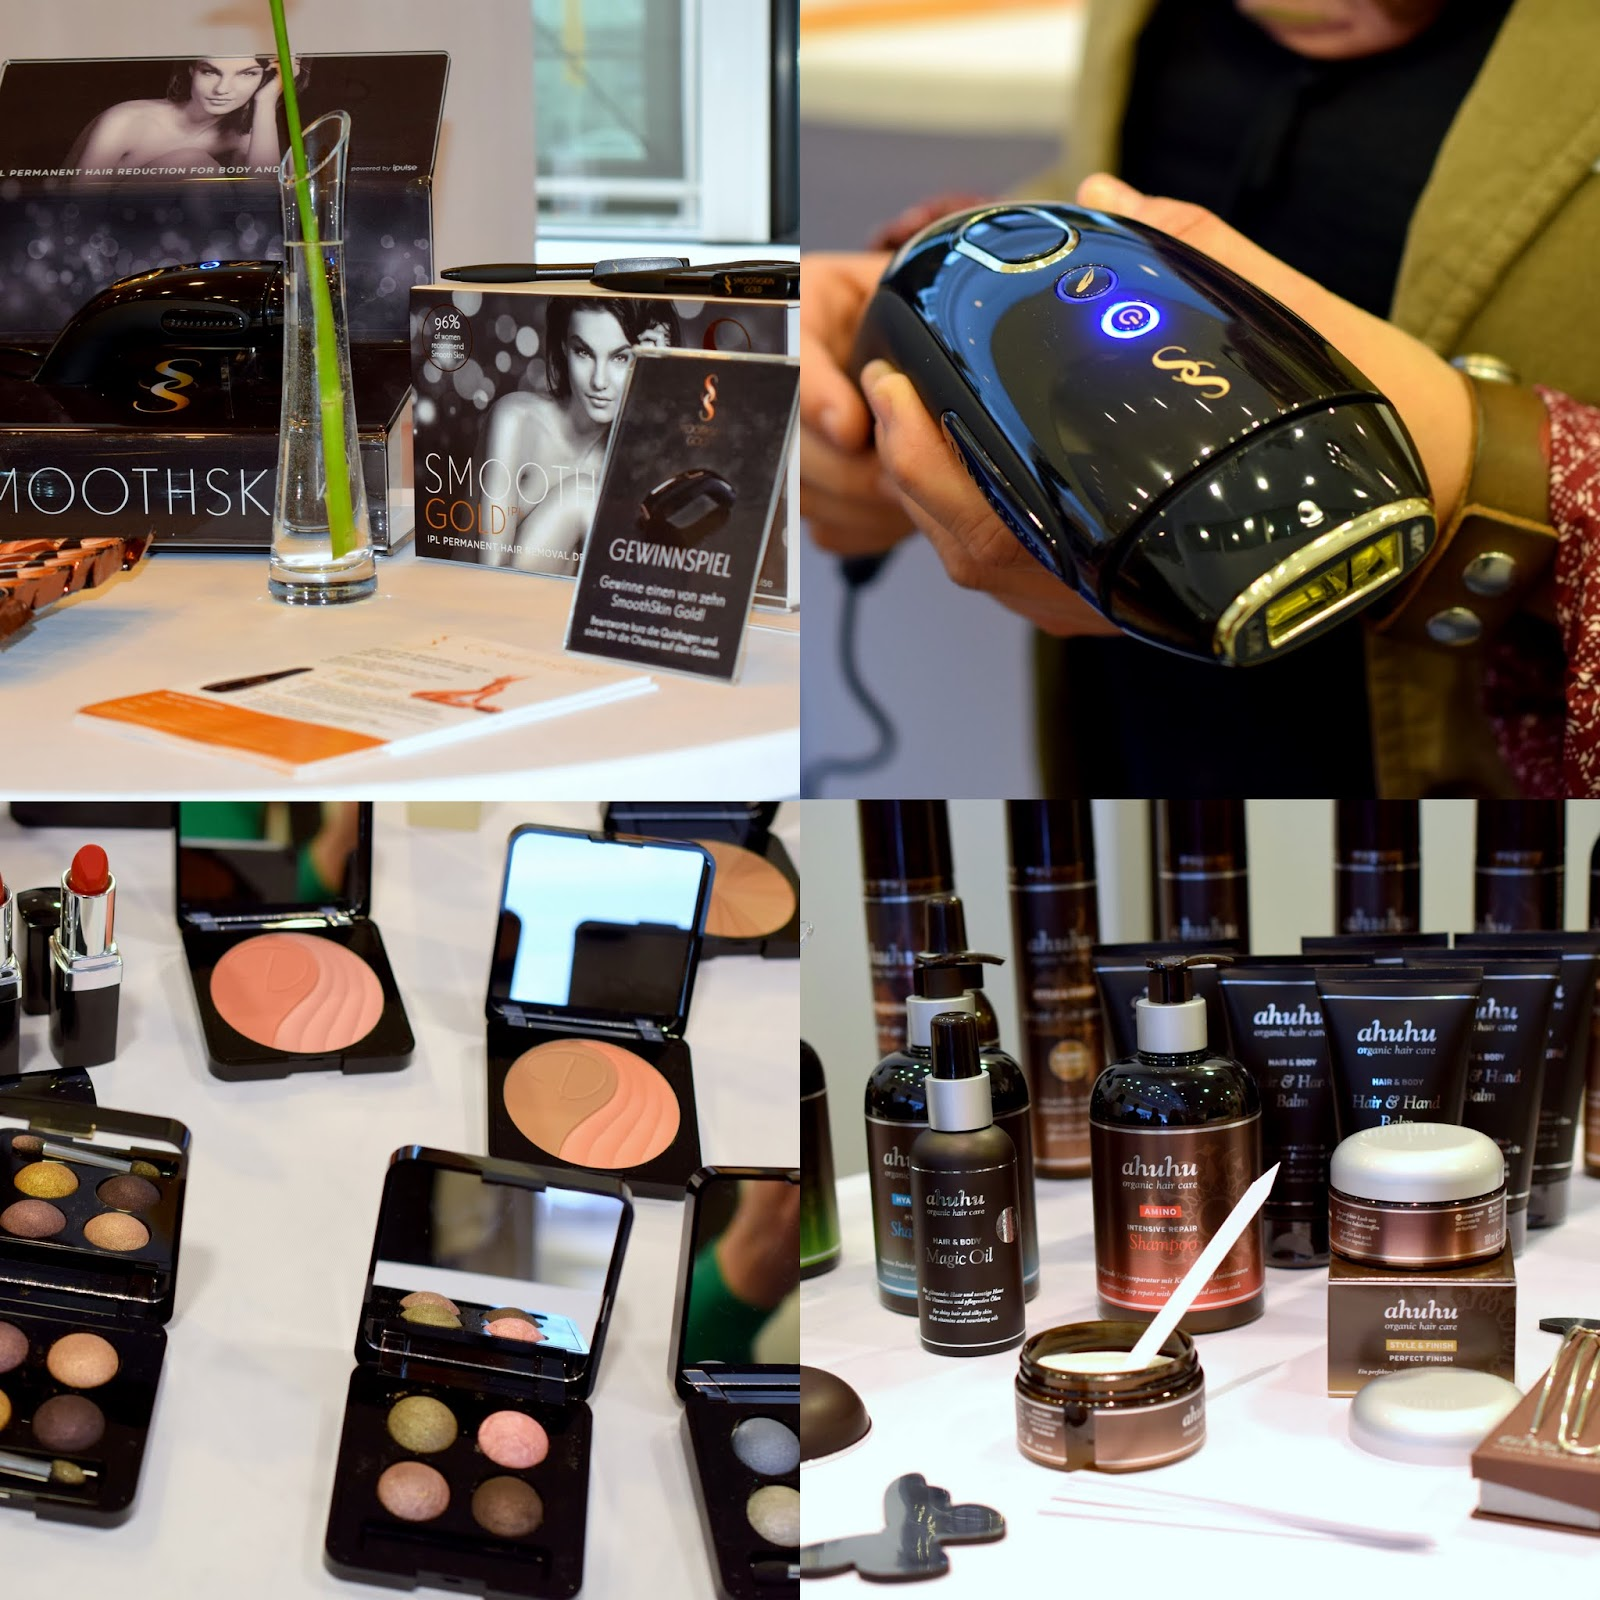 Beautypress Oktober 2015 Eventbericht SmoothSkin, LR Beauty und Ahuhu